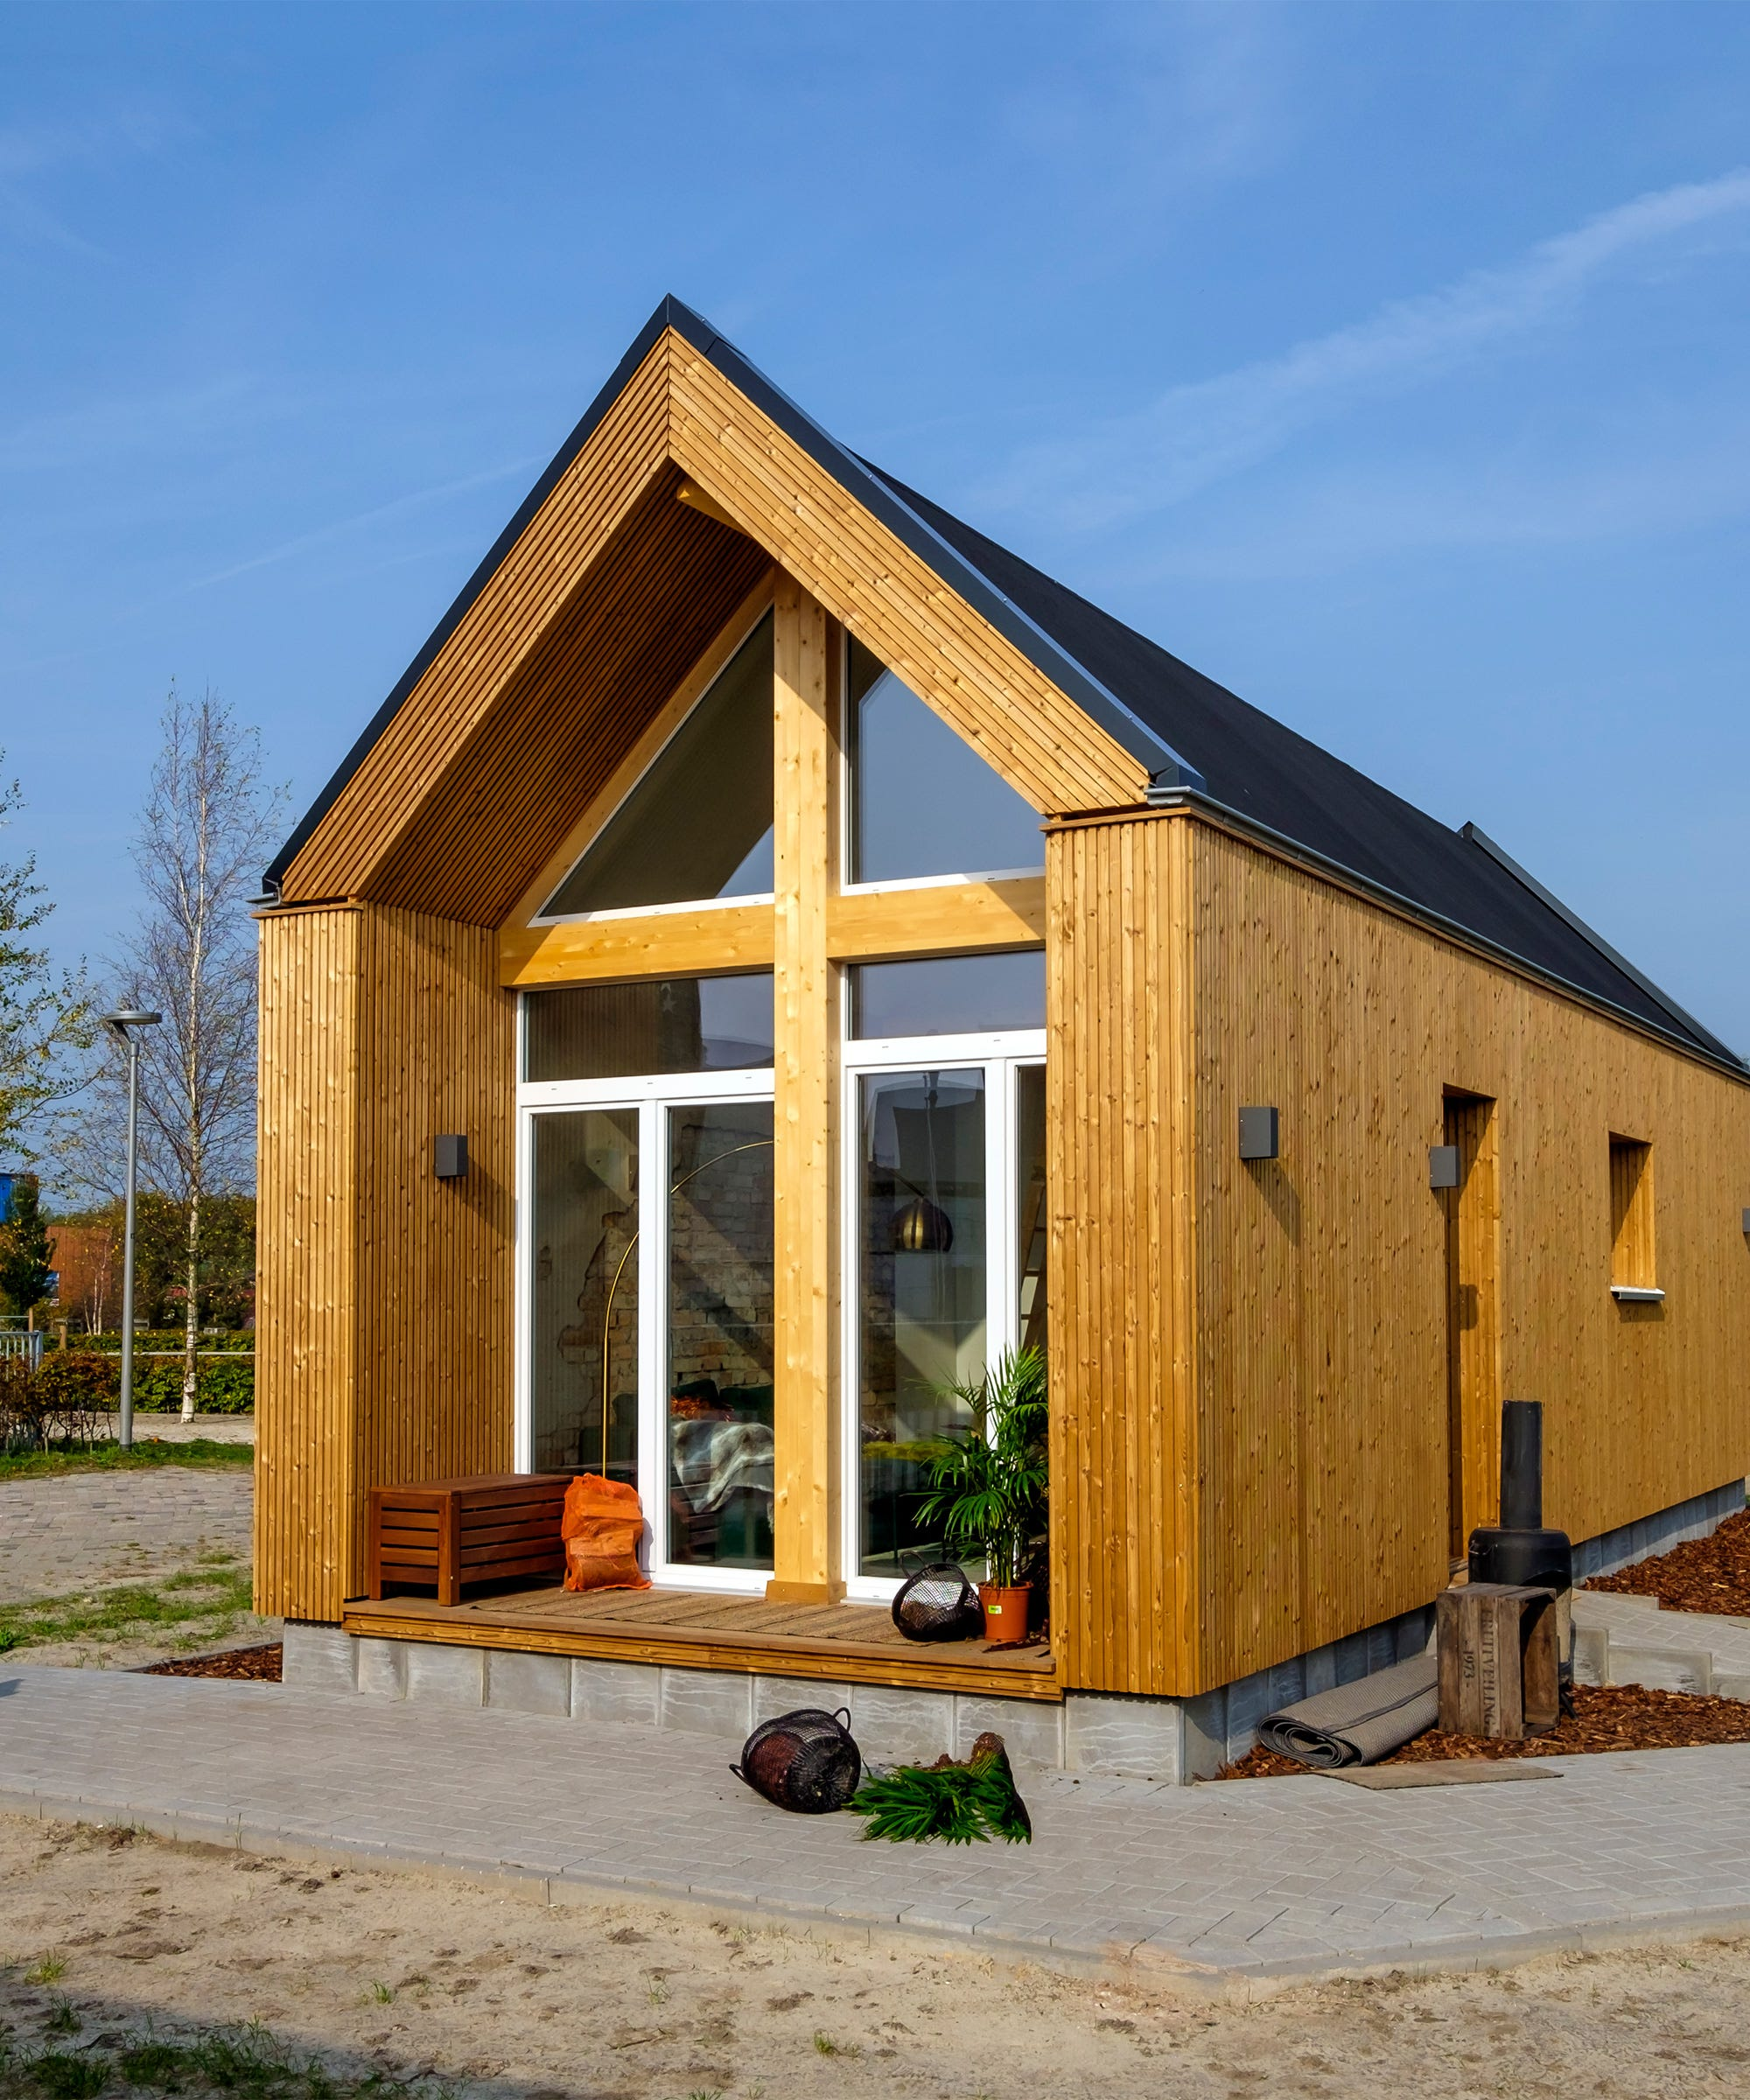 Tiny Home Living Practices Anyone Can Adopt In The Name Of Sustainability